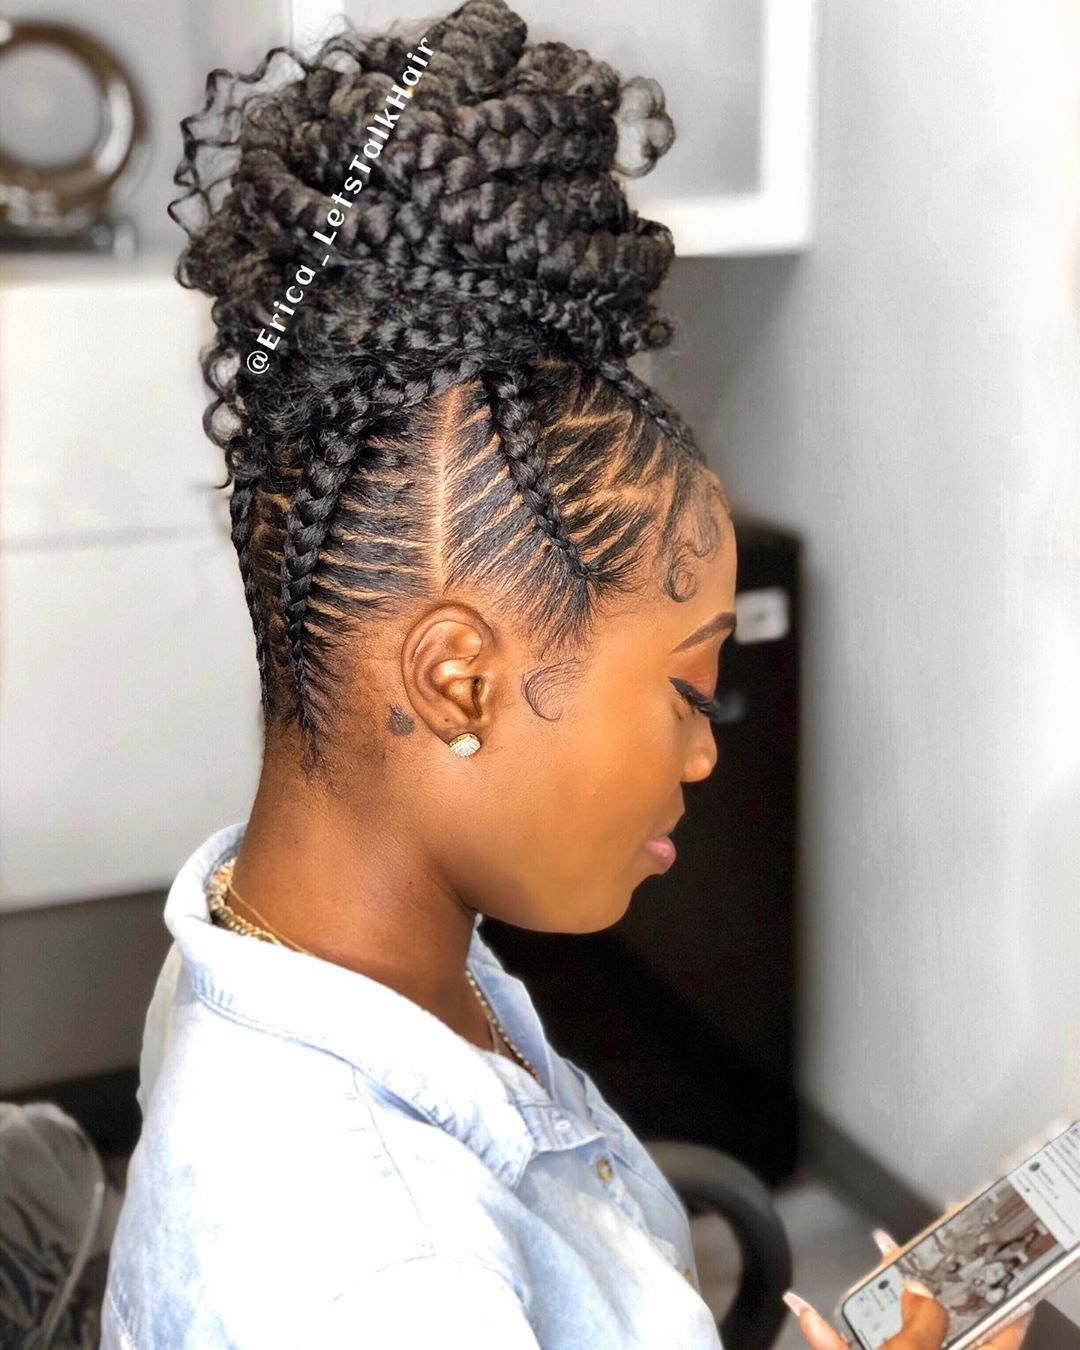 Erica Letstalkhair Topknot Kinda Day Protectivestyles Natural Hair Styles Braided Bun Hairstyles Braided Hairstyles